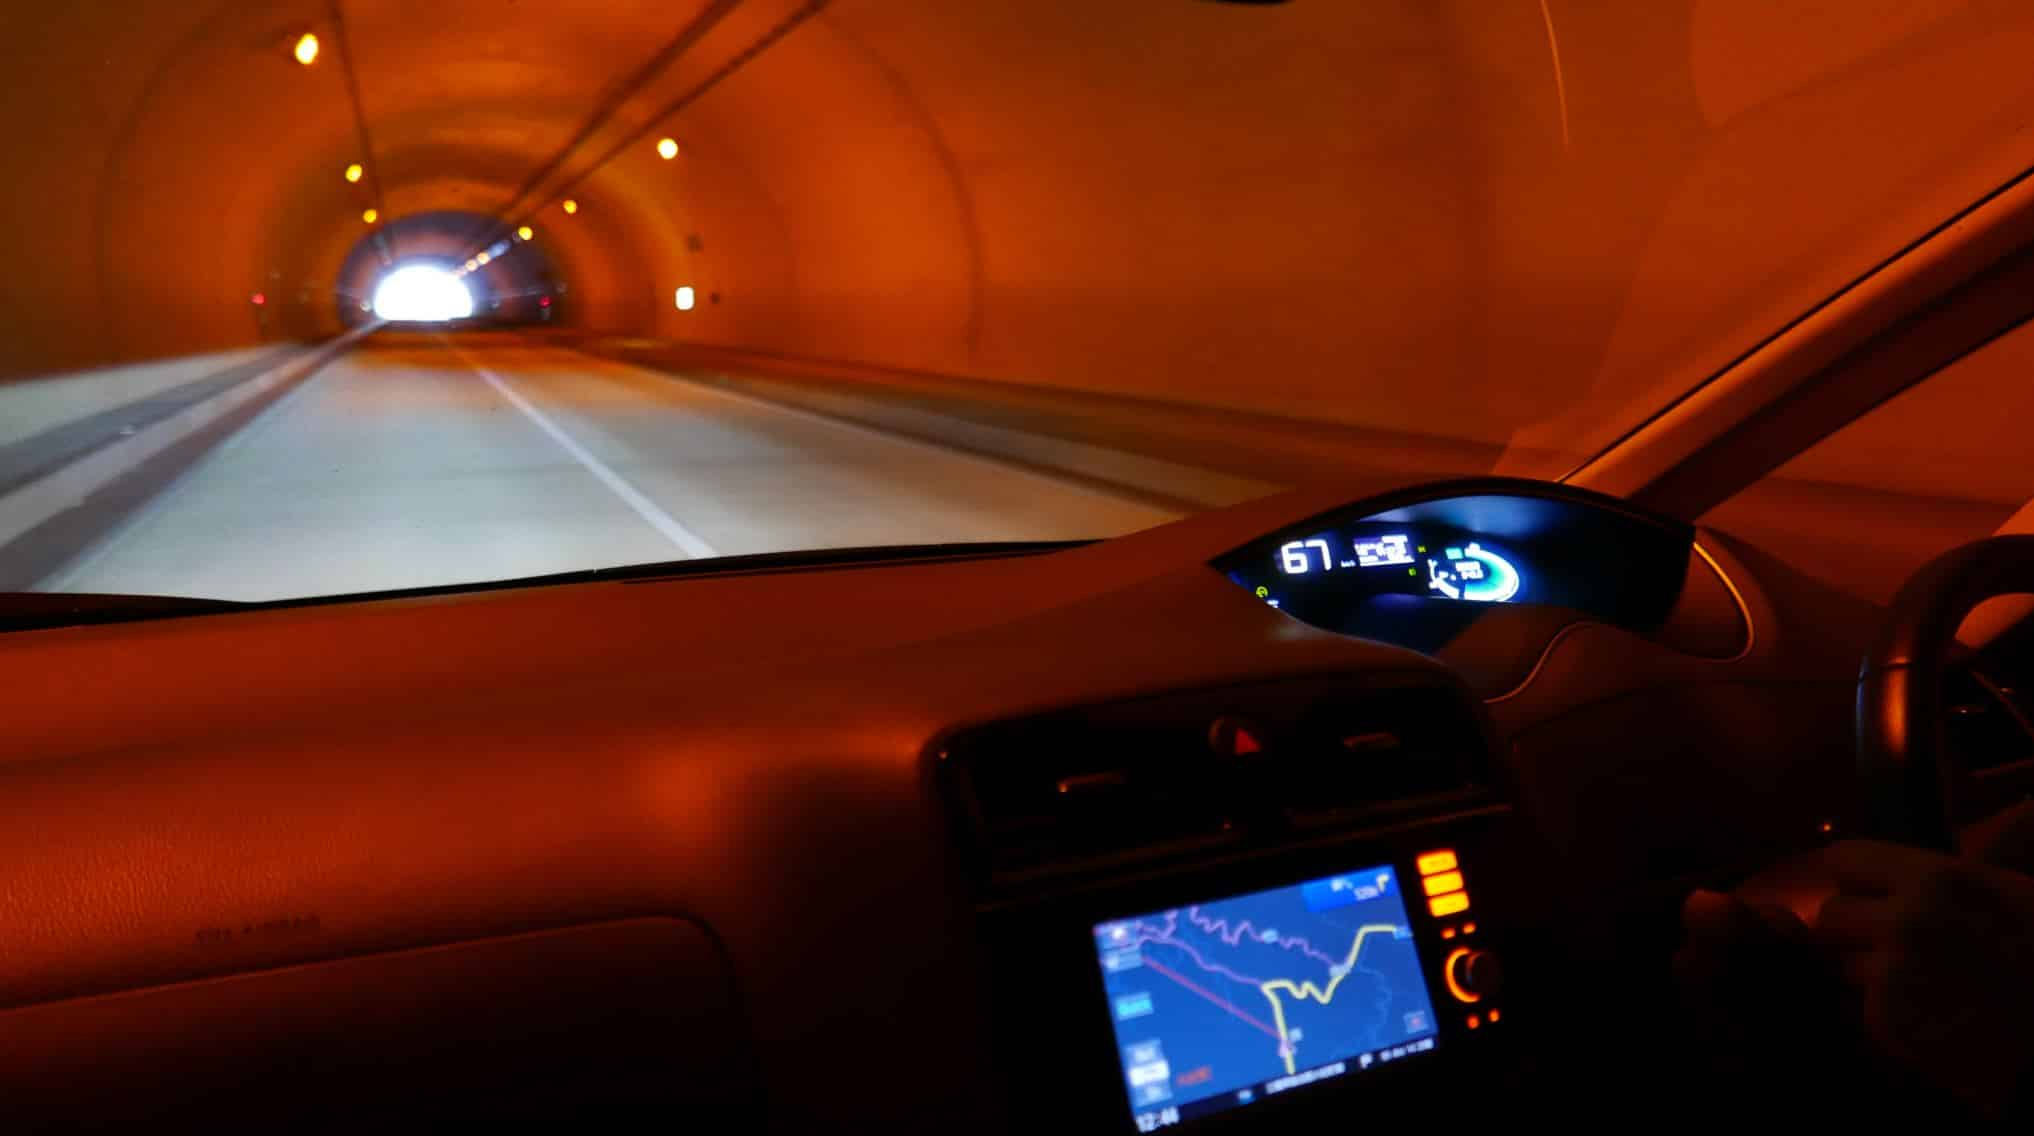 Driving in Japan With GPS and ETC